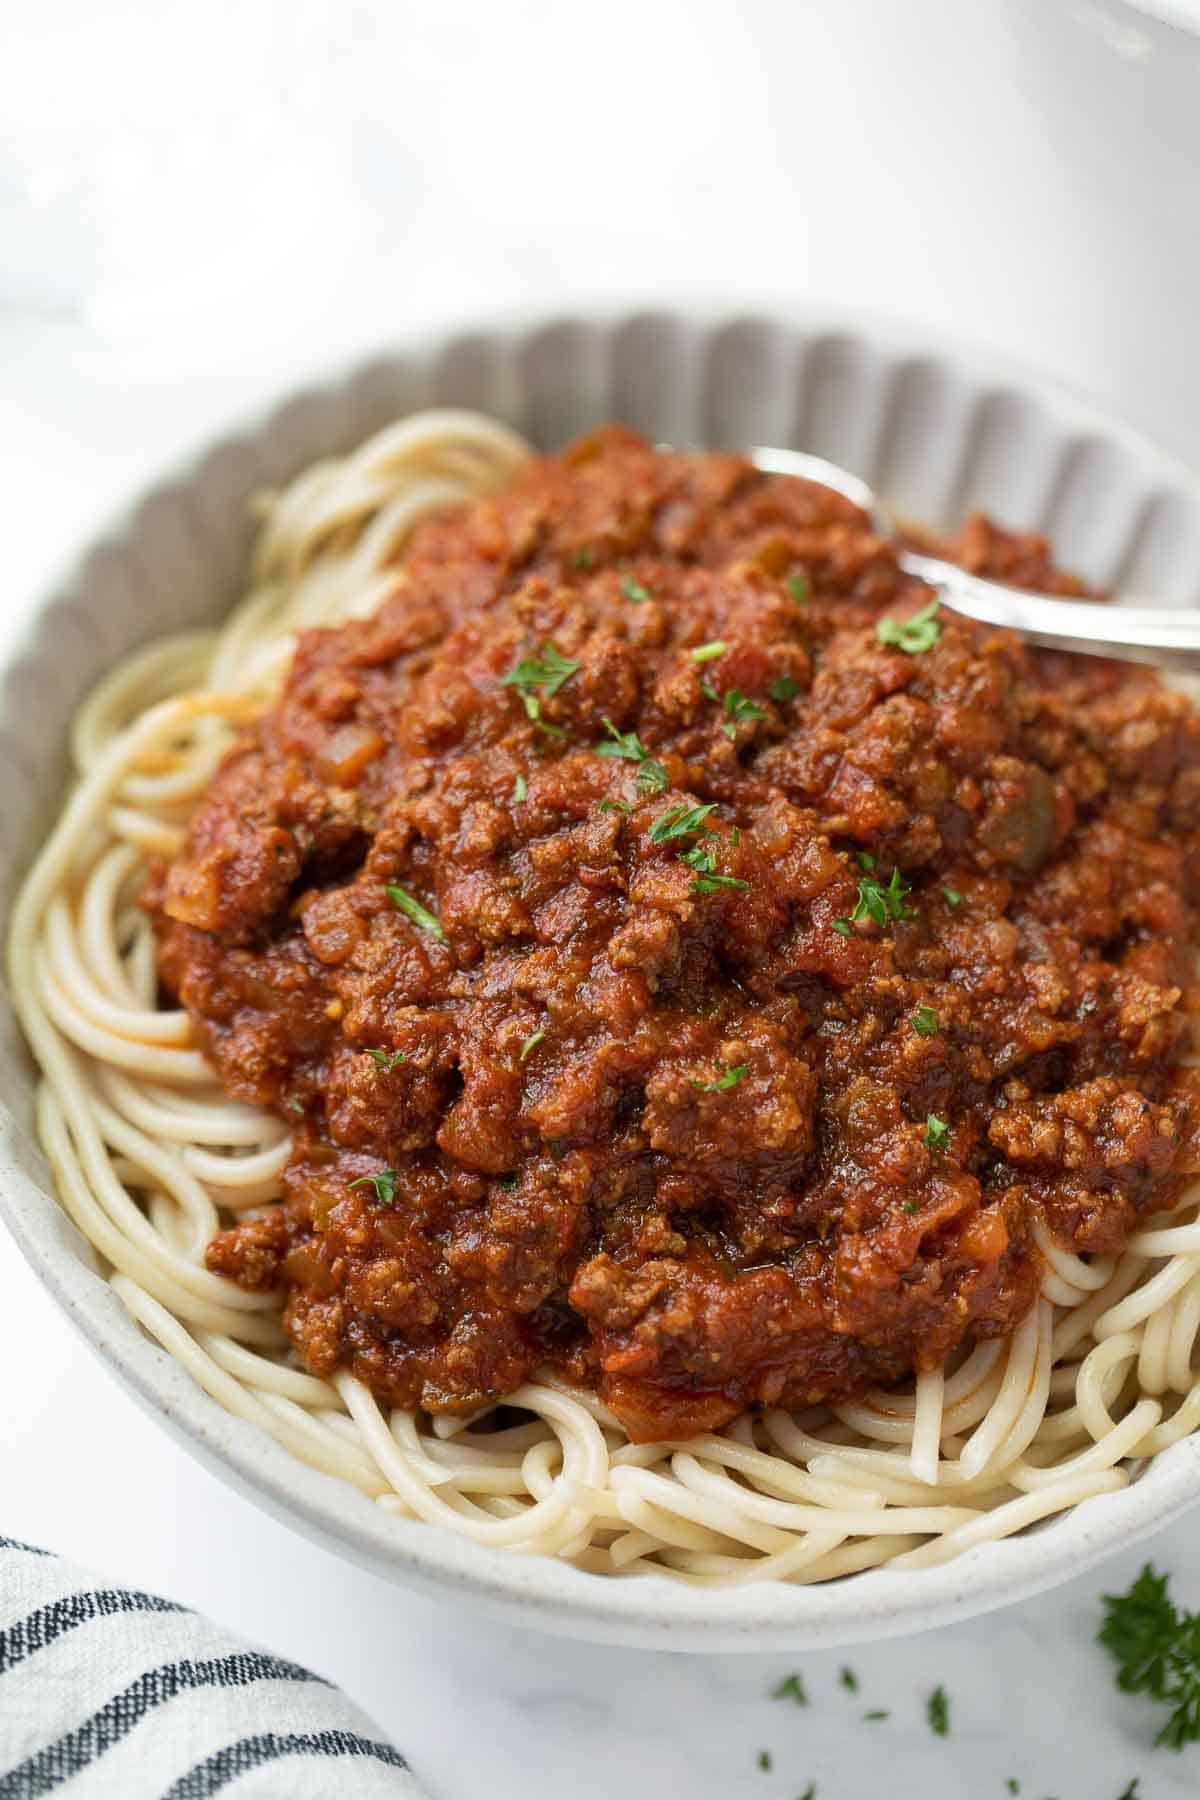 spaghetti sauce over cooked noodles in white plate